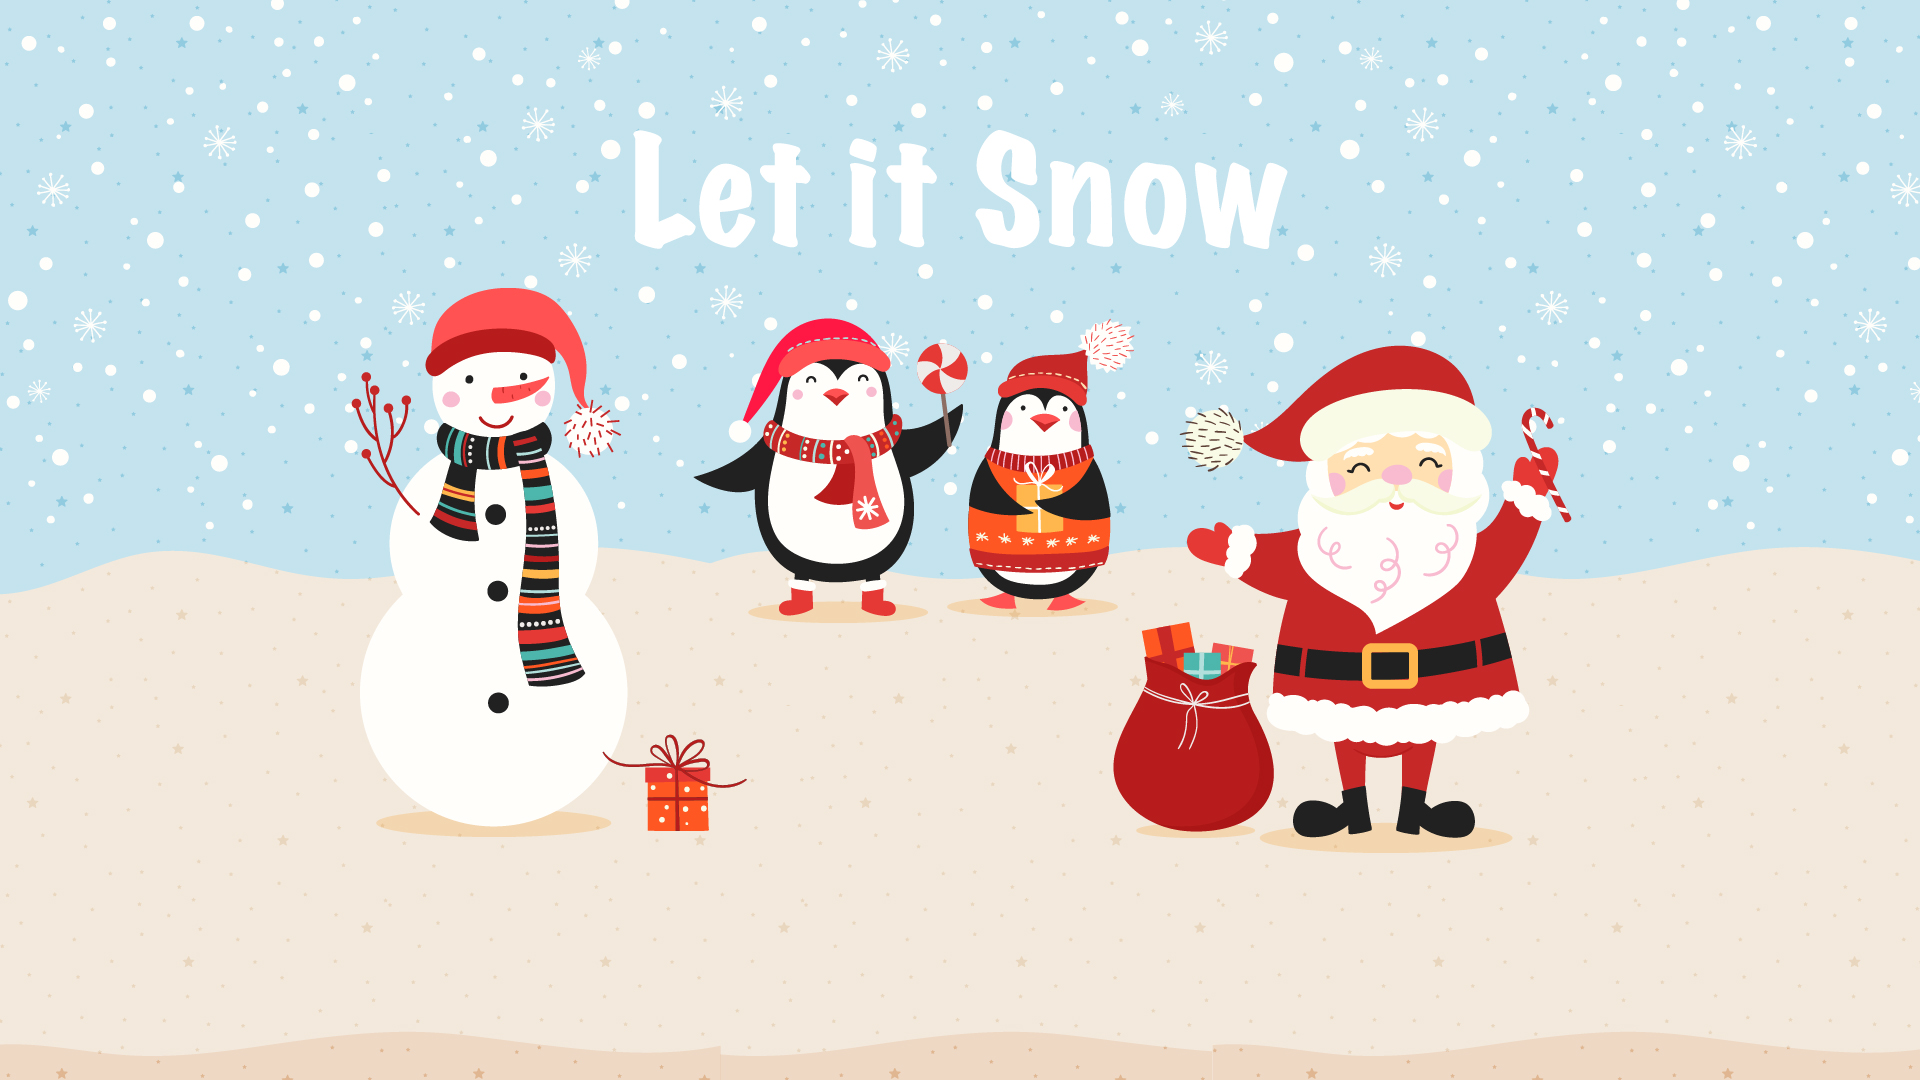 5 Free Festive Christmas Wallpapers for